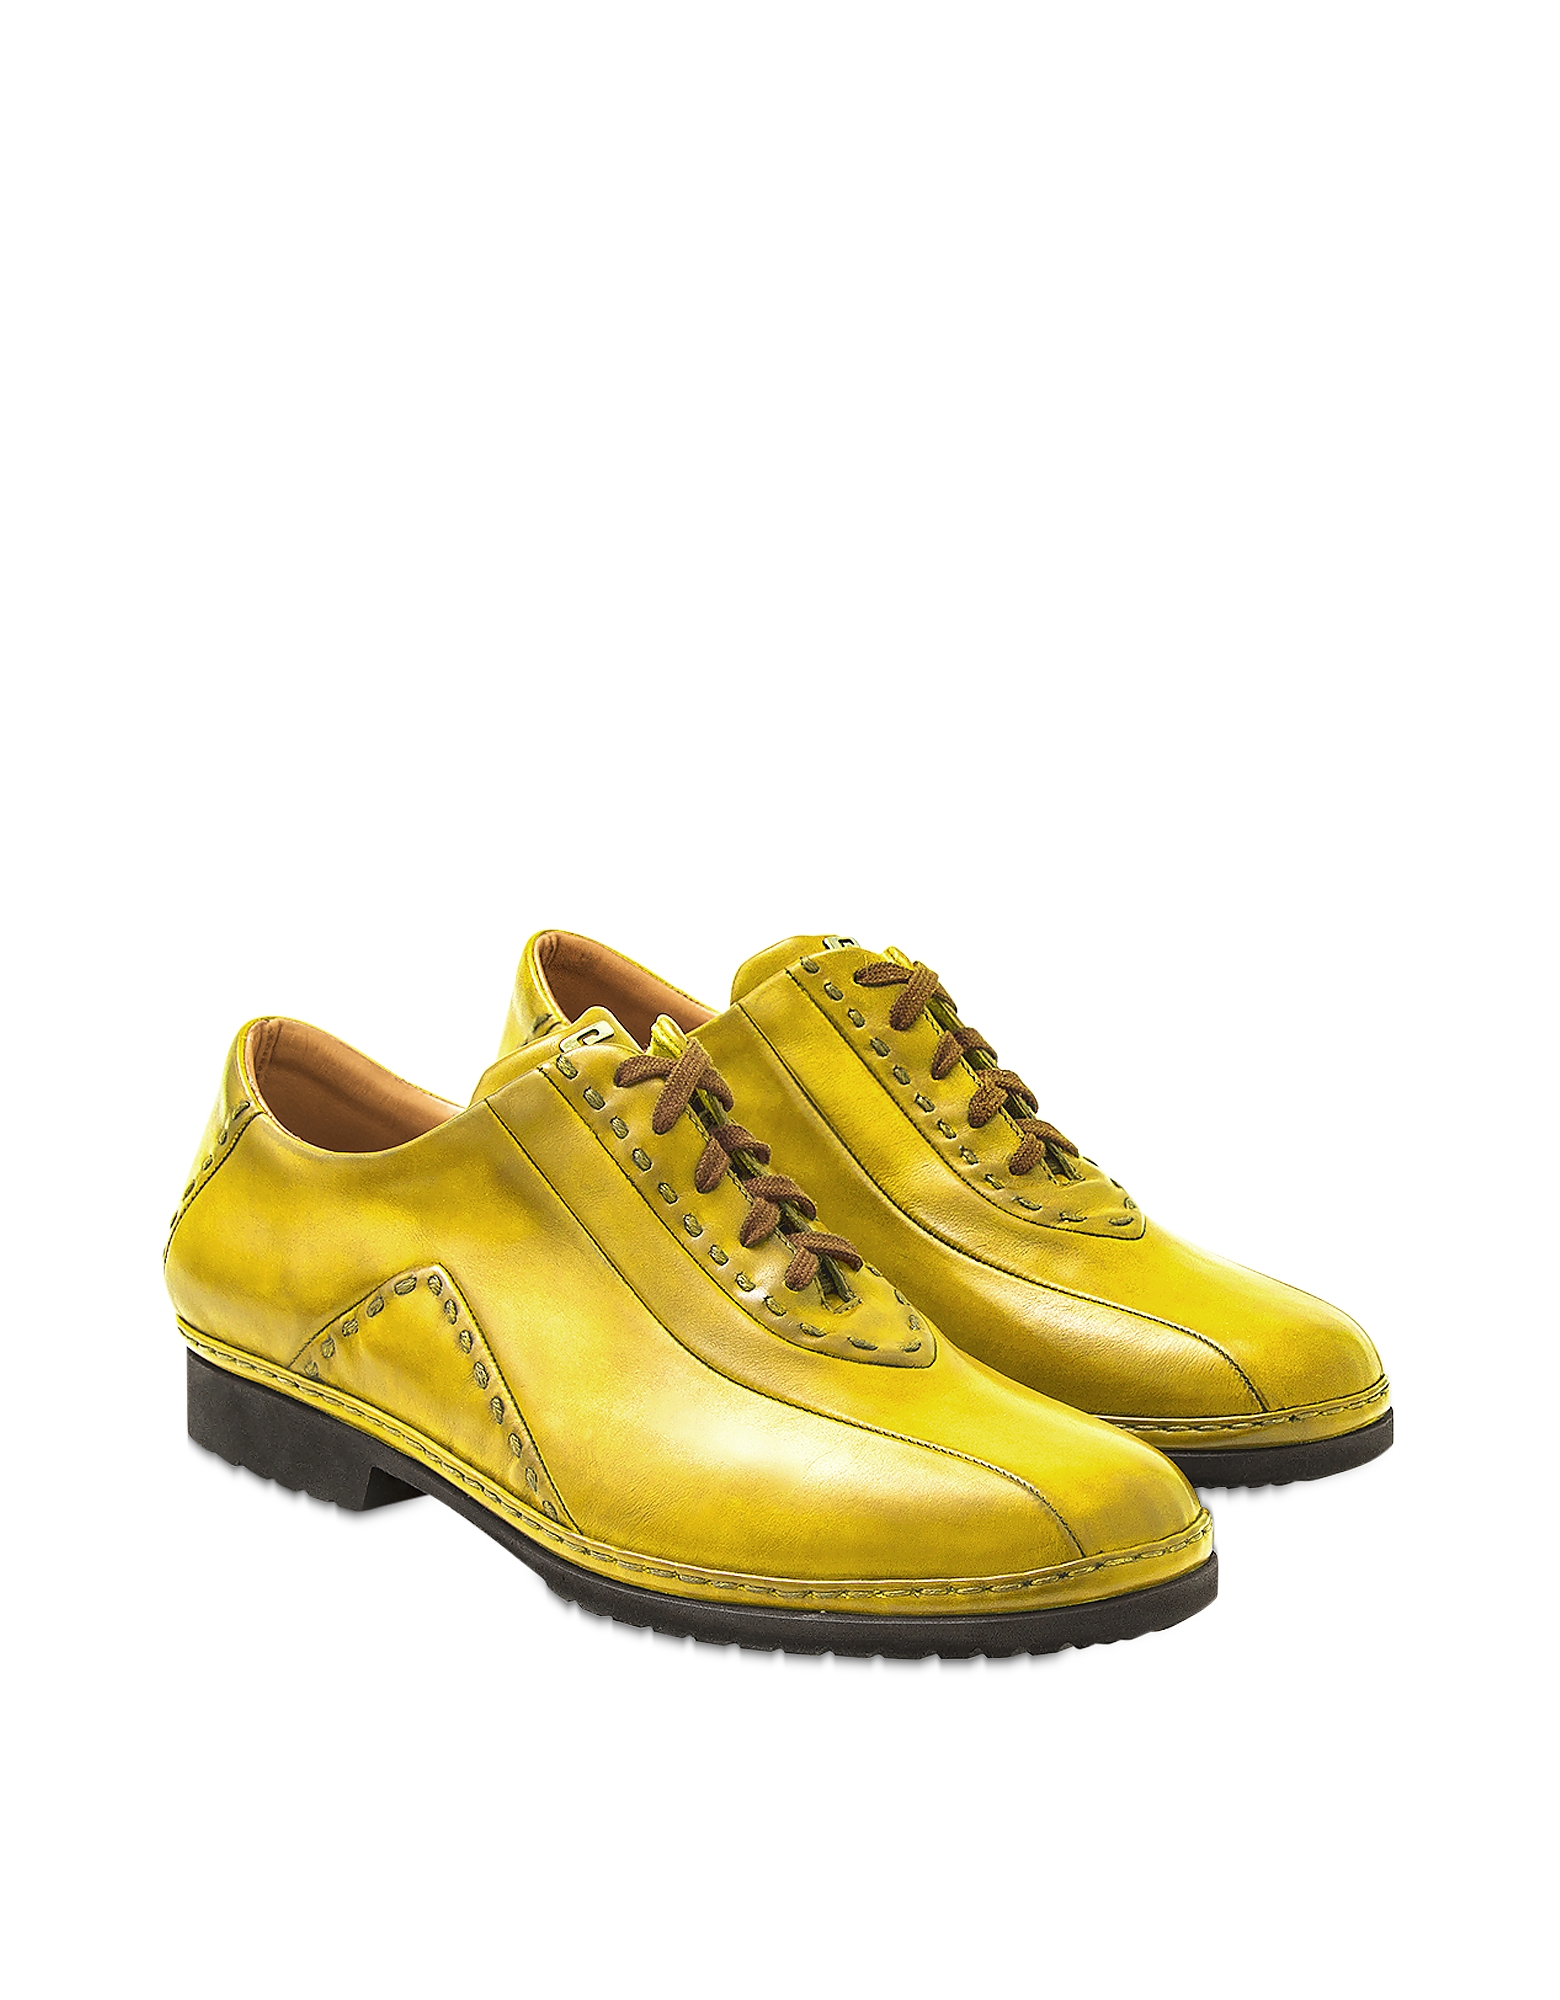 Pakerson Designer Shoes, Yellow Italian Hand Made Calf Leather Lace-up Shoes